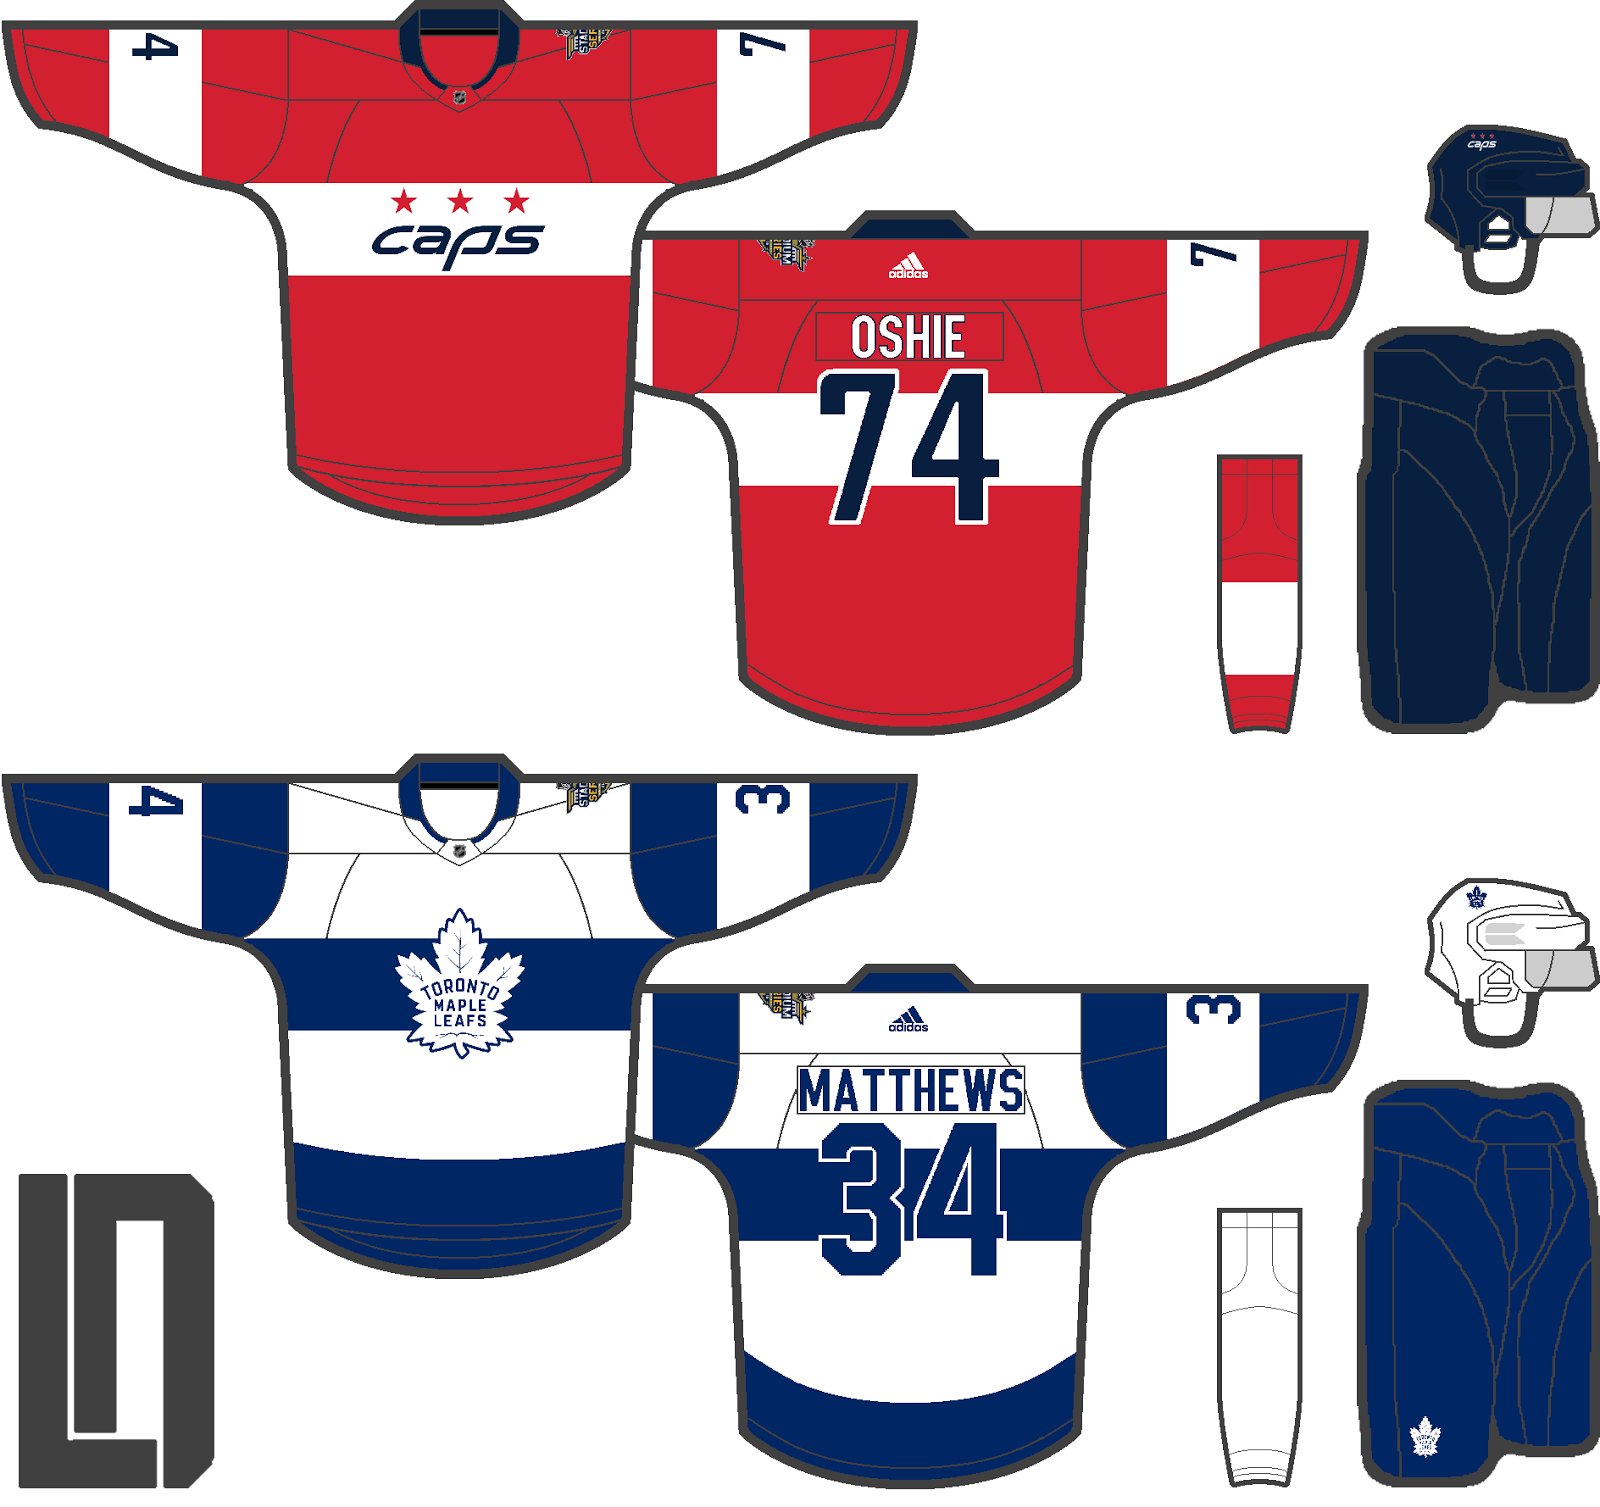 31c1d6931 Edit  Here s two concepts I found that lend to the speculation that the  Leafs are going to use white versions of the Centennial Classic jerseys.